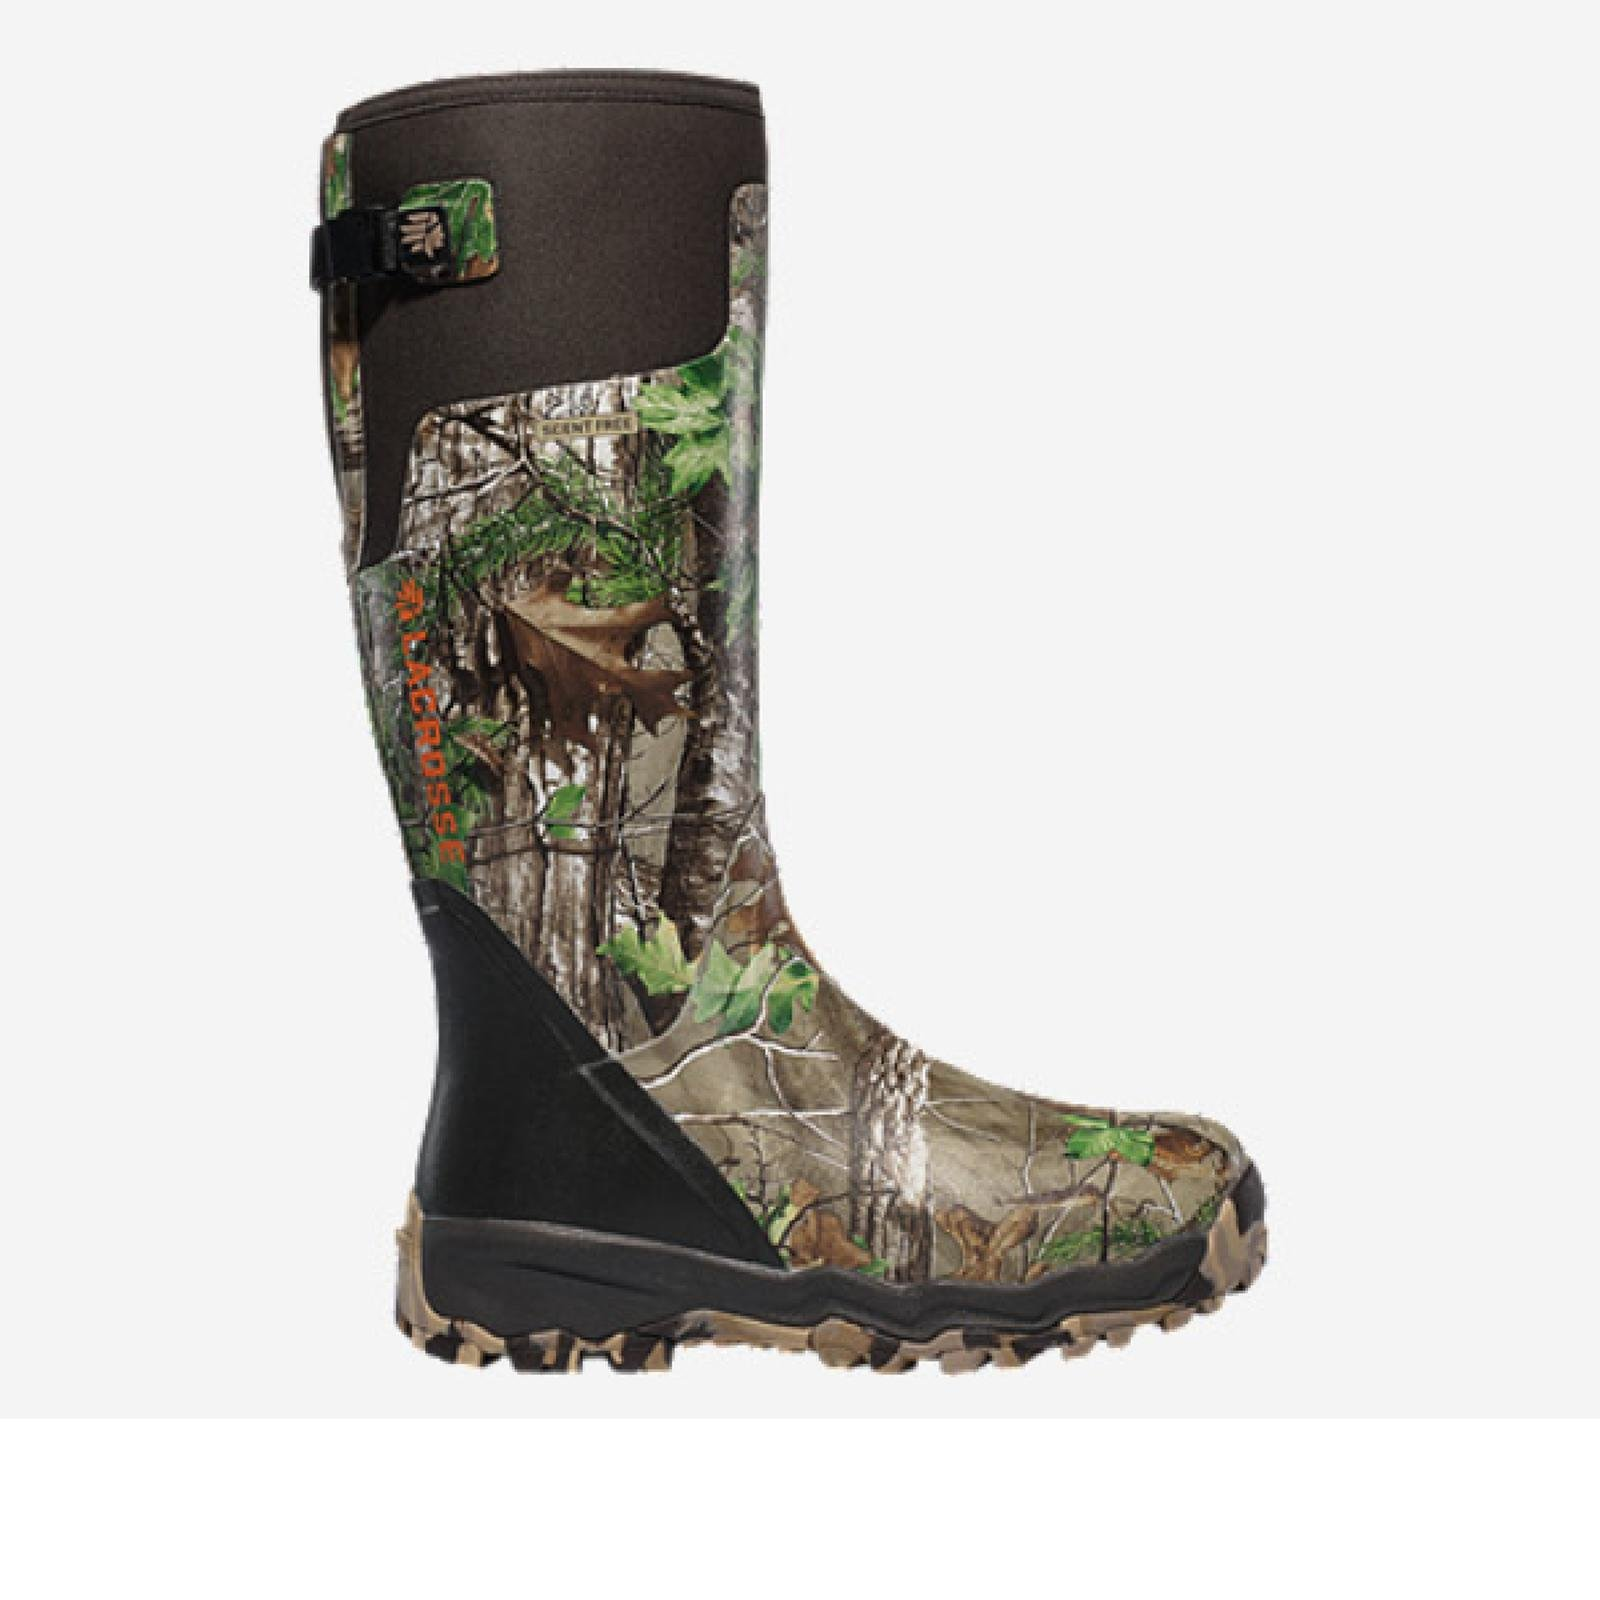 LaCrosse Men's Alphaburly Pro 18'' Hunting Boot Camo 376005 12 ME by Lacrosse